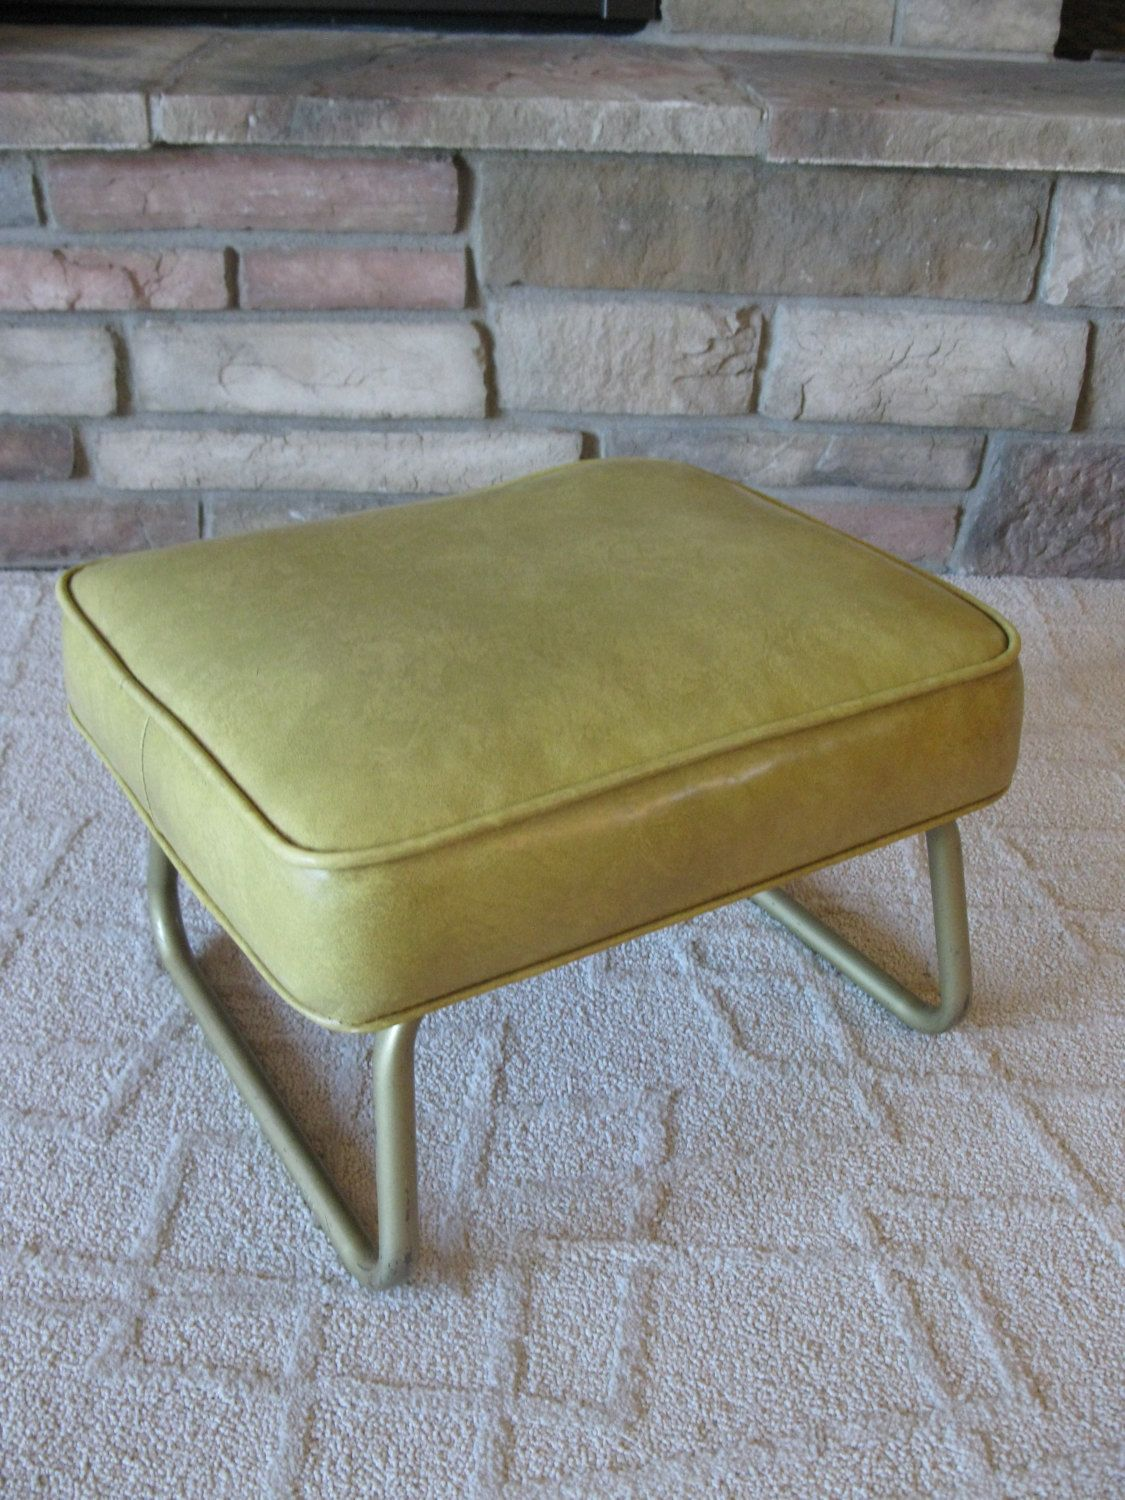 Laz E Rest Ottoman Gold Adjustable Footstool Hassock Vinyl Rectangular Shape Crawford Mfg Co Mid Century Adjustable Footstool Footstool Ottoman